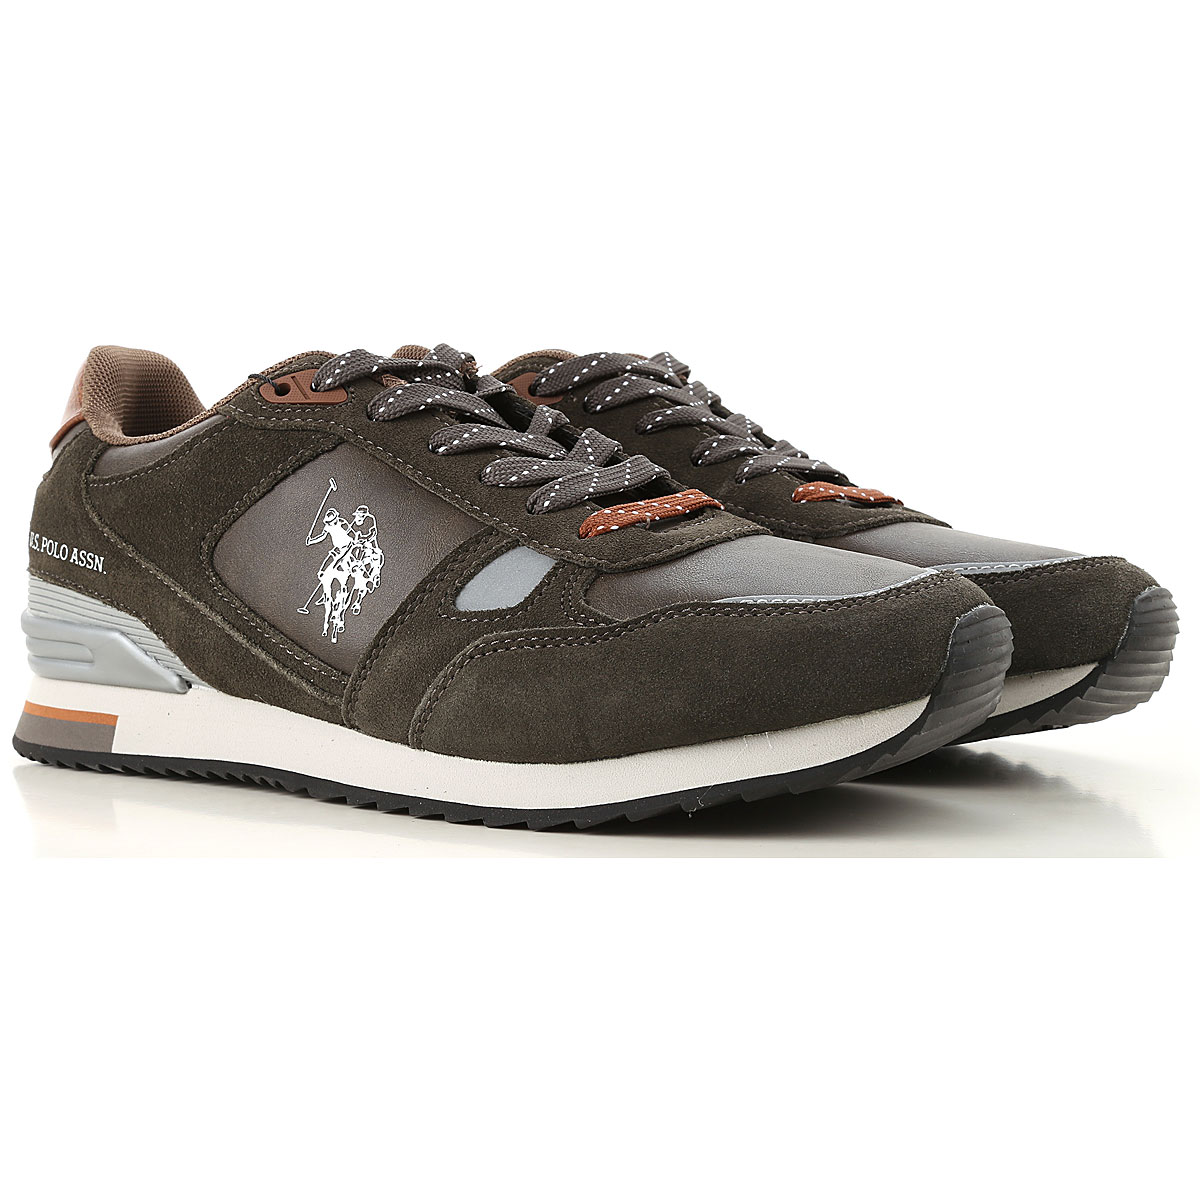 Image of U.S. Polo Sneakers for Men, Dark Green, Suede leather, 2017, UK 6 - EUR 40 - US 7 UK 7 - EUR 41 - US 8 UK 8 - EUR 42 - US 9 UK 9 - EUR 43 - US 10